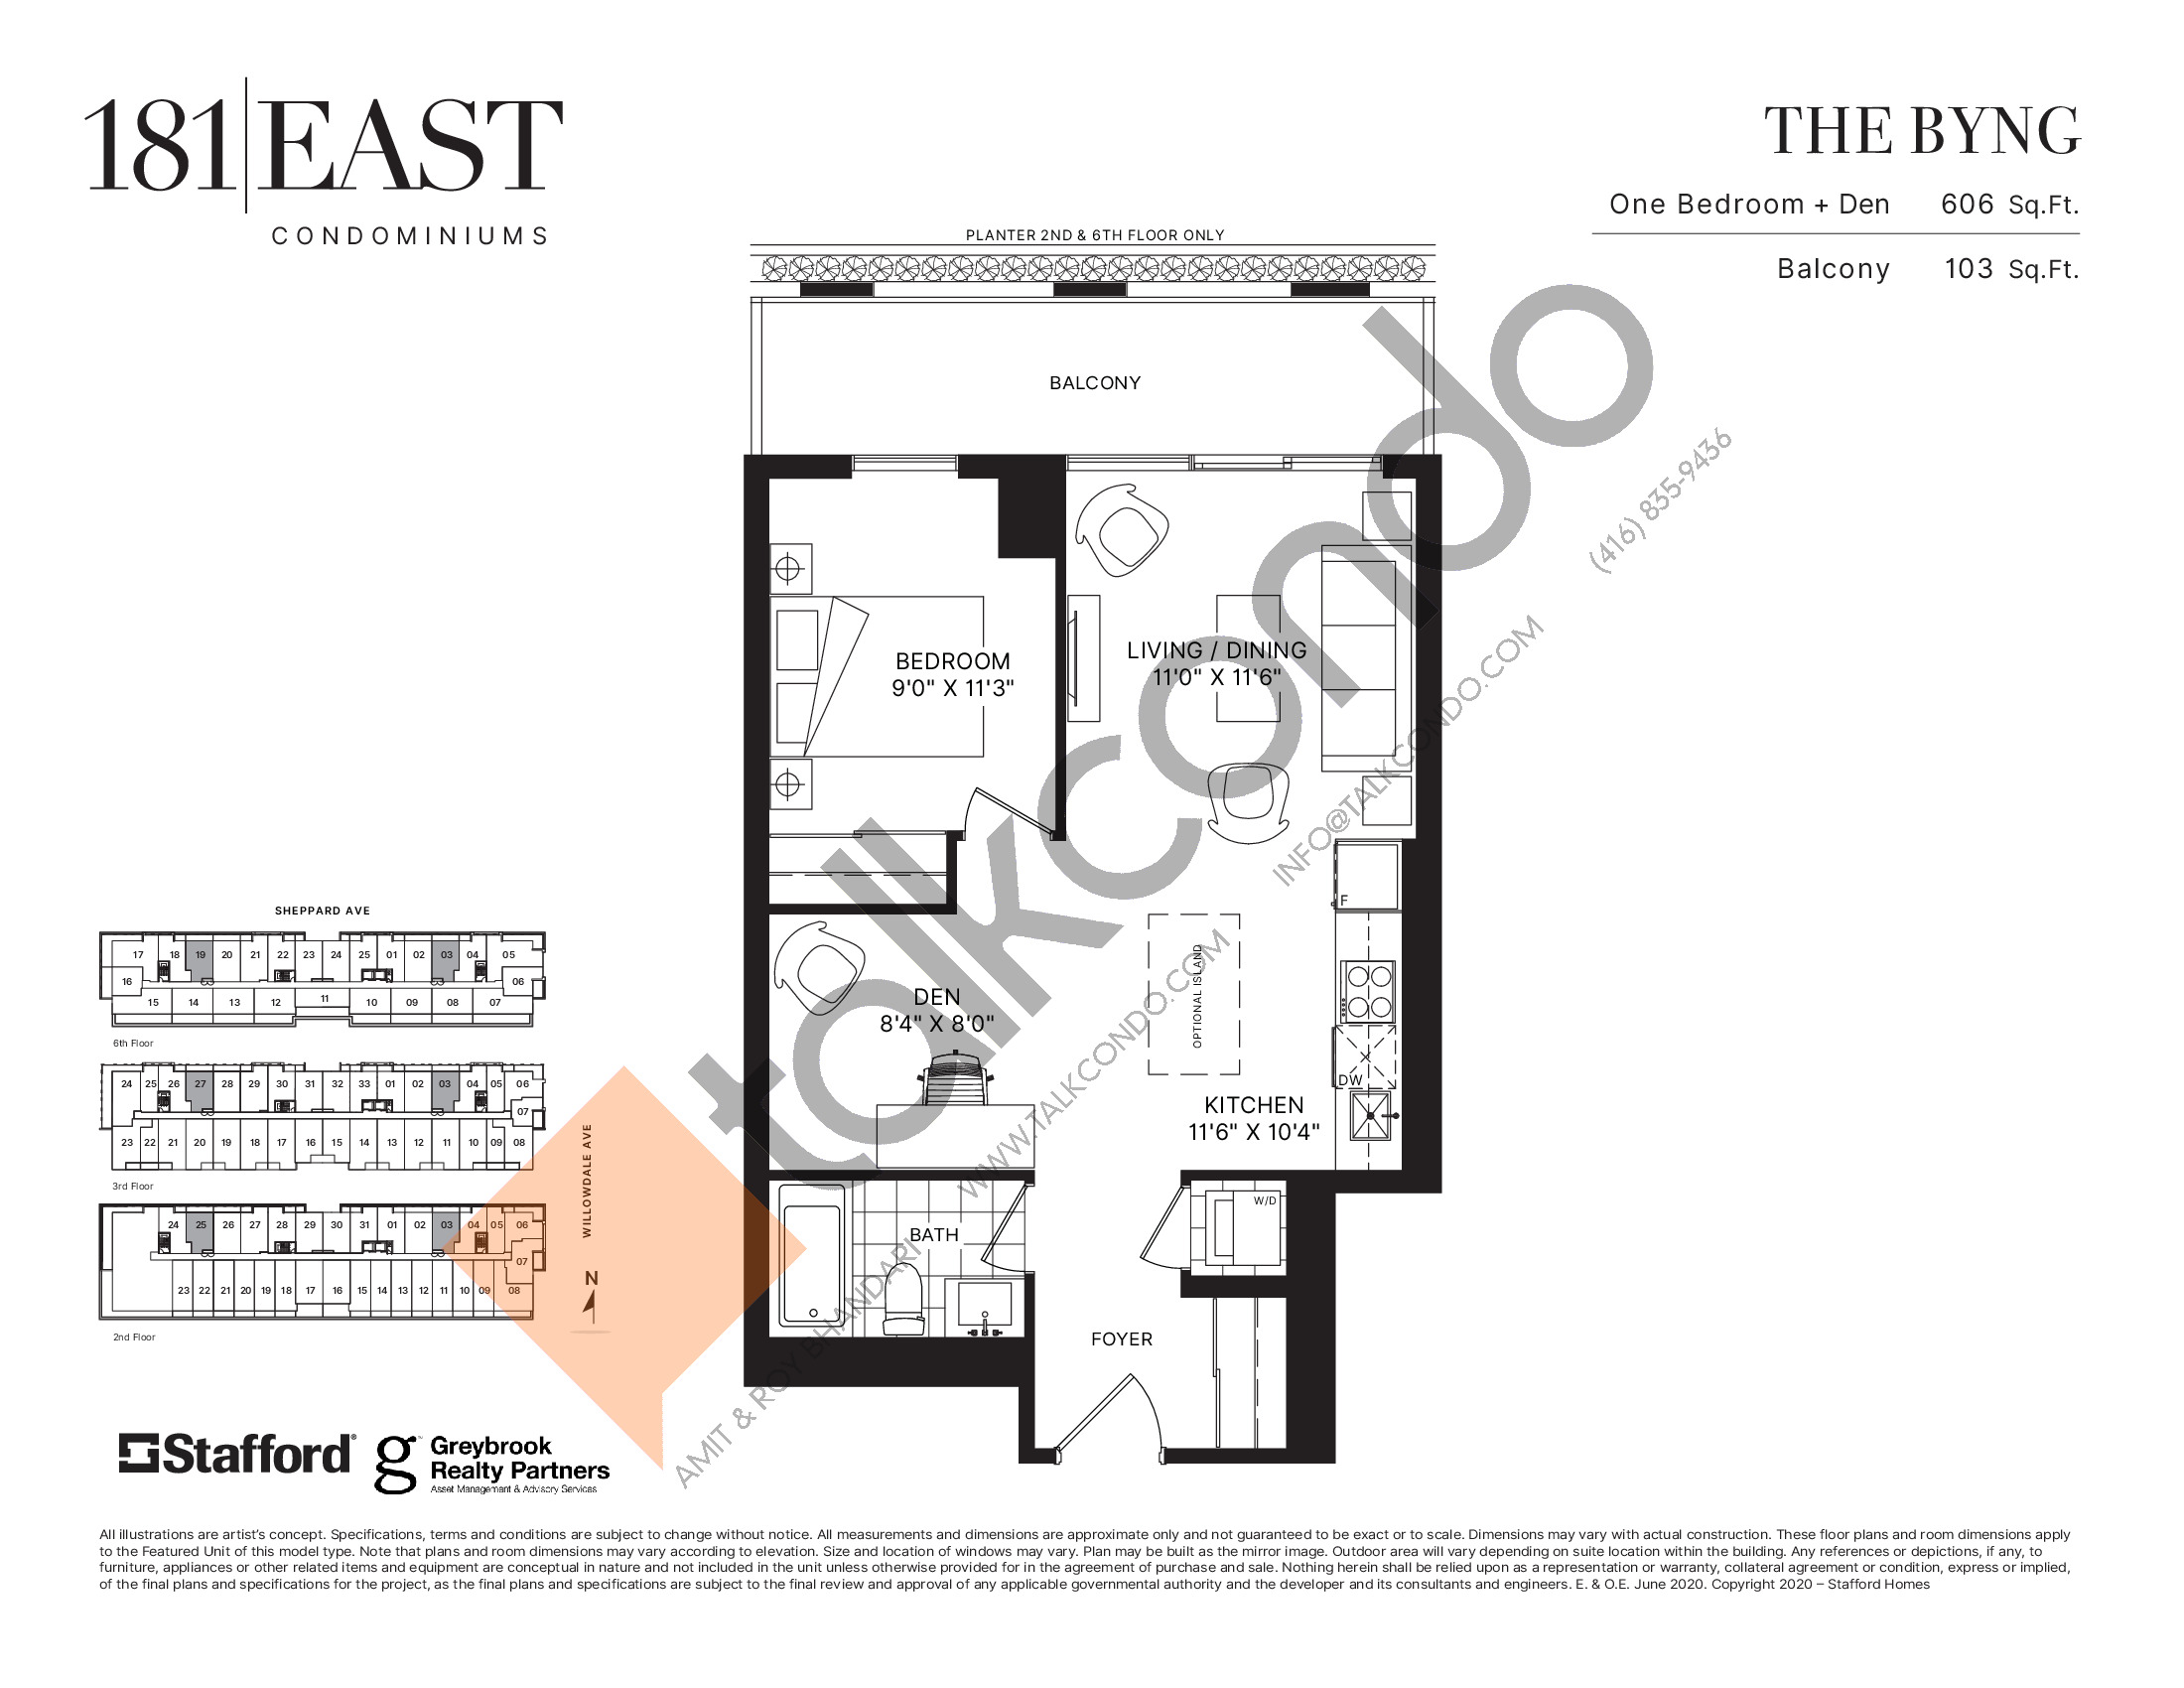 The Byng Floor Plan at 181 East Condos - 606 sq.ft